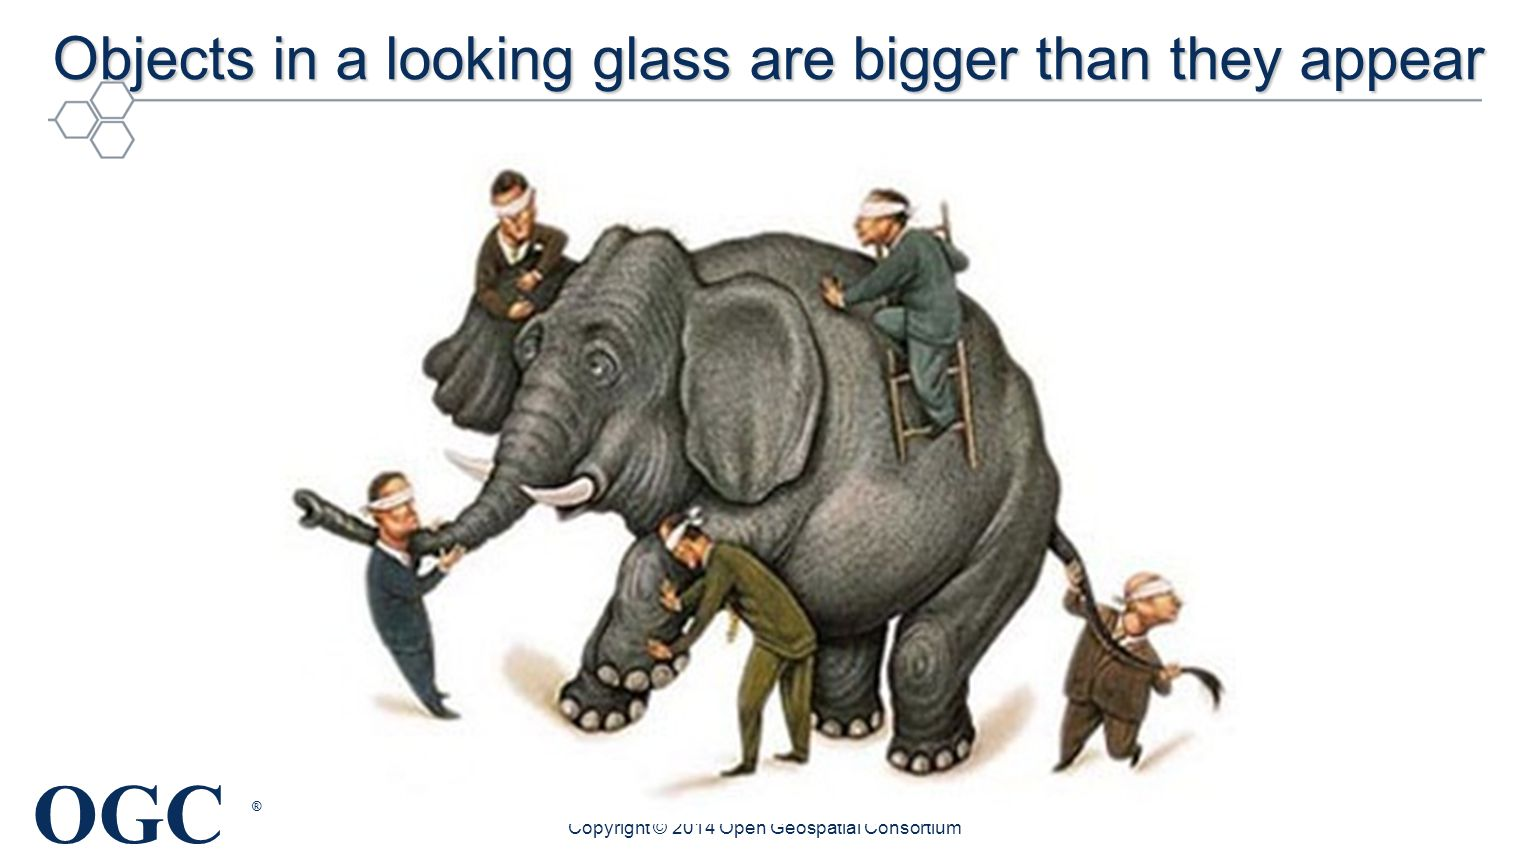 OGC ® Objects in a looking glass are bigger than they appear Copyright © 2014 Open Geospatial Consortium